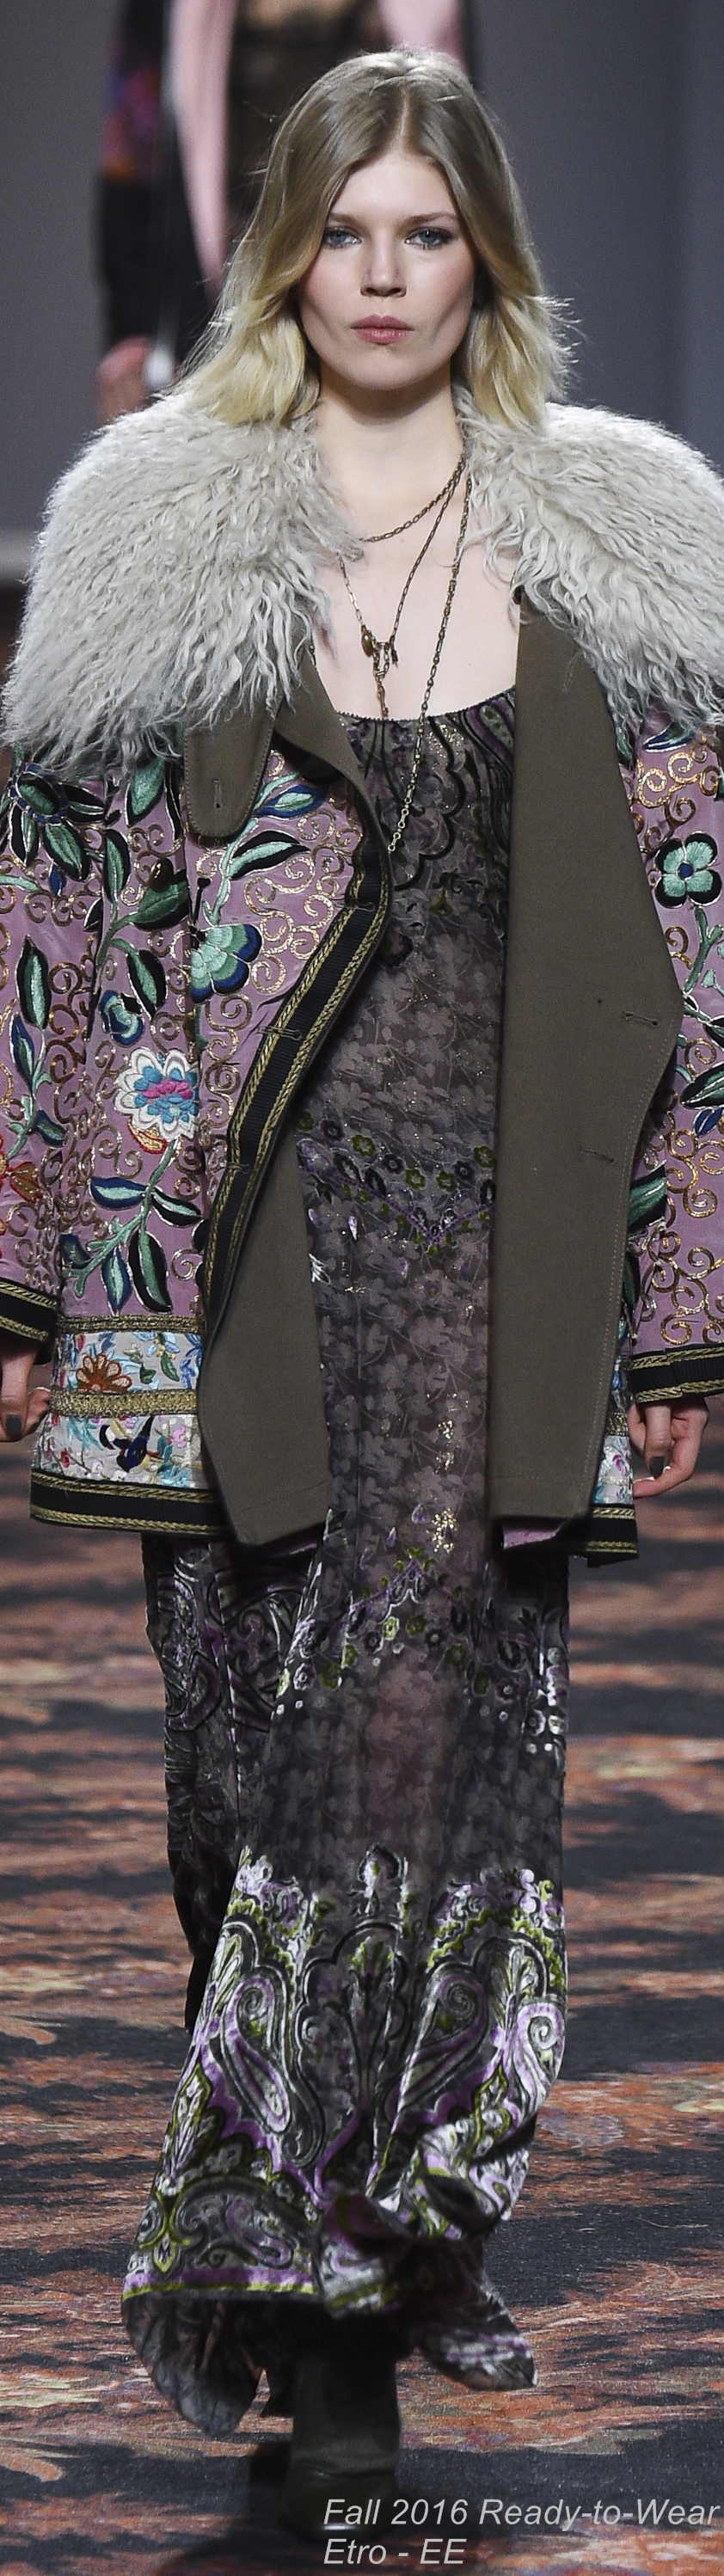 Fall 2016 Ready-to-Wear Etro